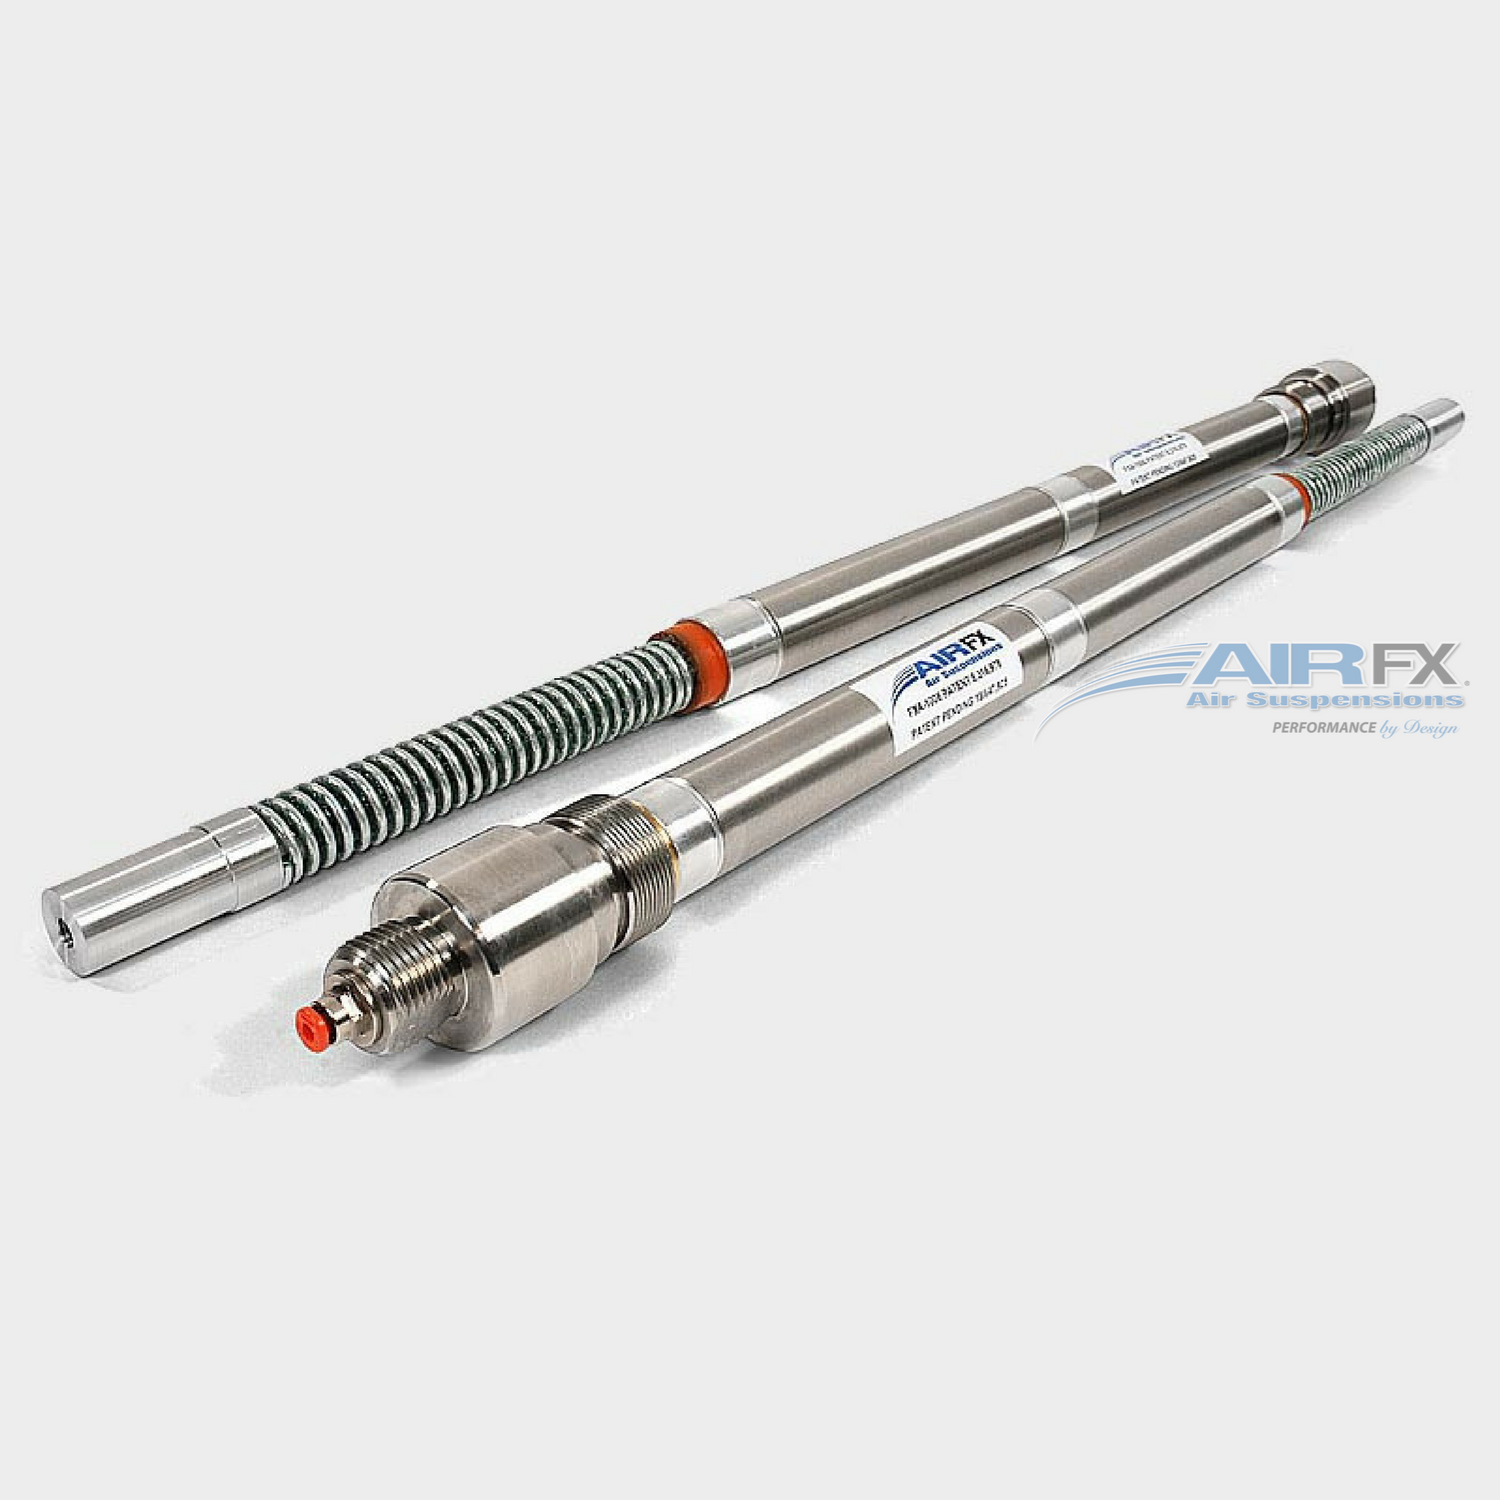 41mm Front Cartridge Pair with HHI Extensions for your 26 inch wheel with short neck